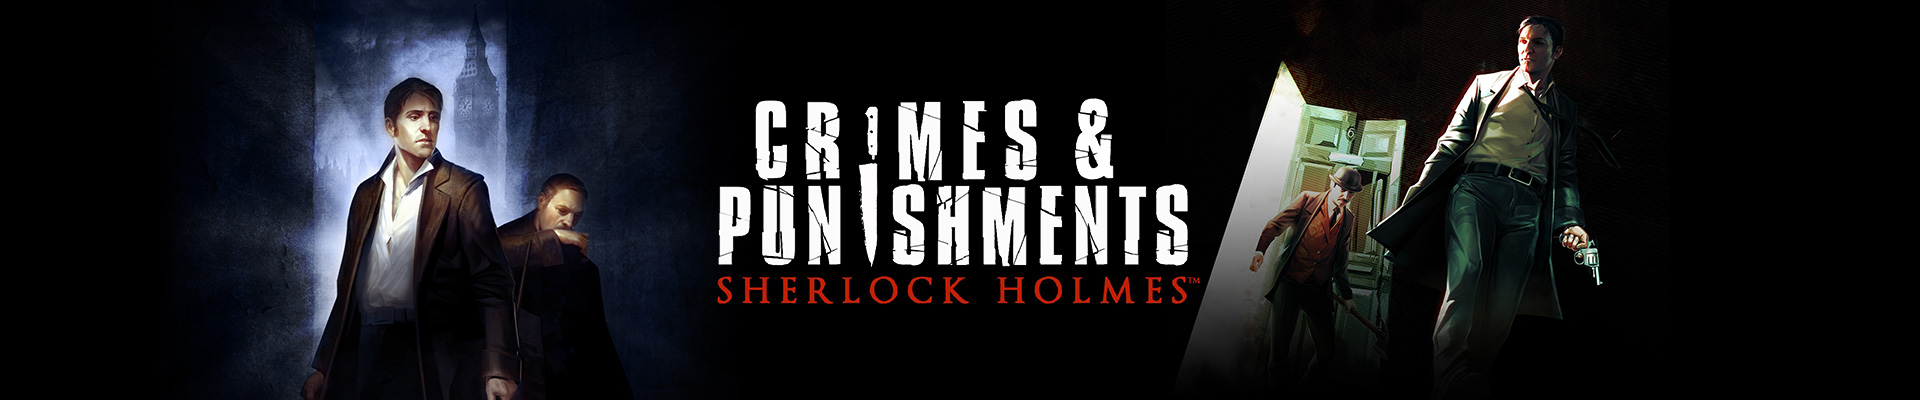 Thoughts on: Sherlock Holmes: Crimes and Punishments